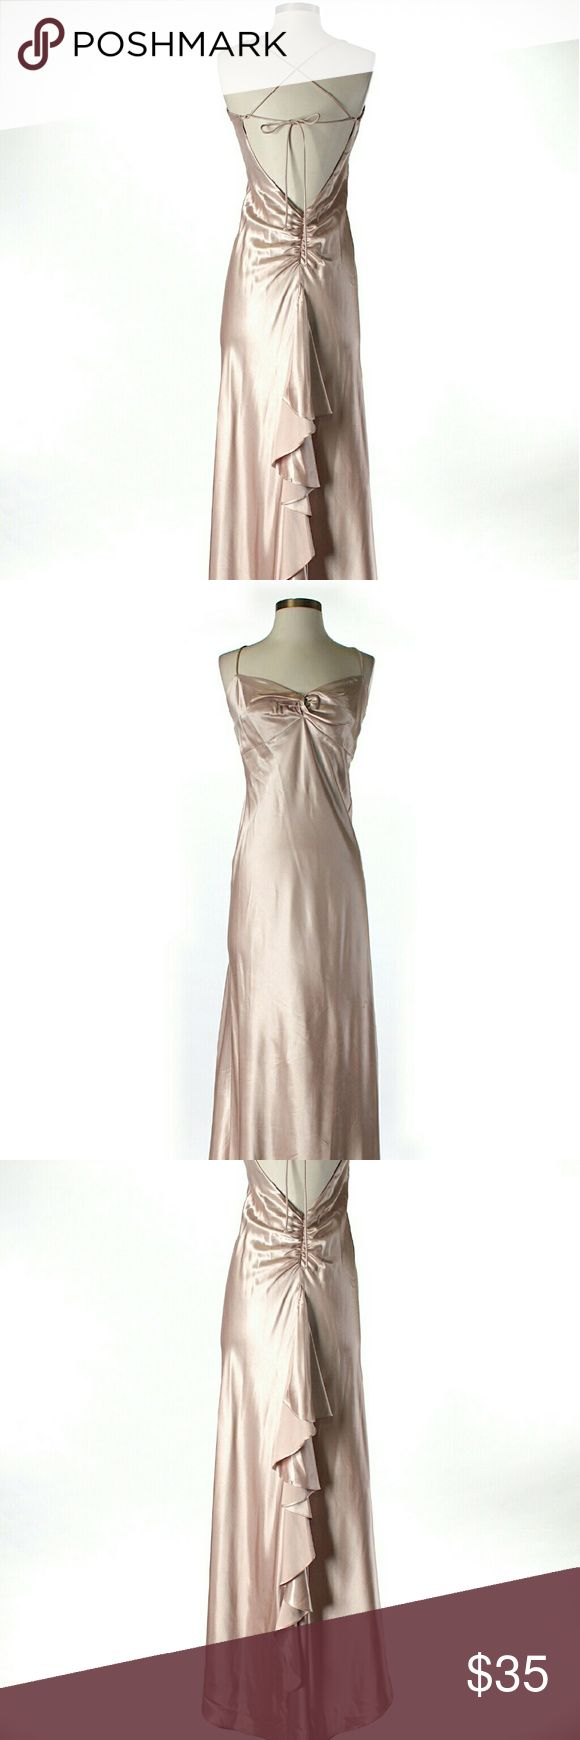 Windsor Silky Champagne Full Length Formal Gown 46 in length  #windsor #champagne #tan #dress #gown #formal #event#formaldress #occasion #event #party #classy #sophisticated #silky #fancy #soft #shiny #strappy #openback #ruffle #ruching #flattering #slimming #valentinesday #neutral #beautiful #comfortable #flowy #anytime #goeswitheverything  M5 WINDSOR Dresses Maxi